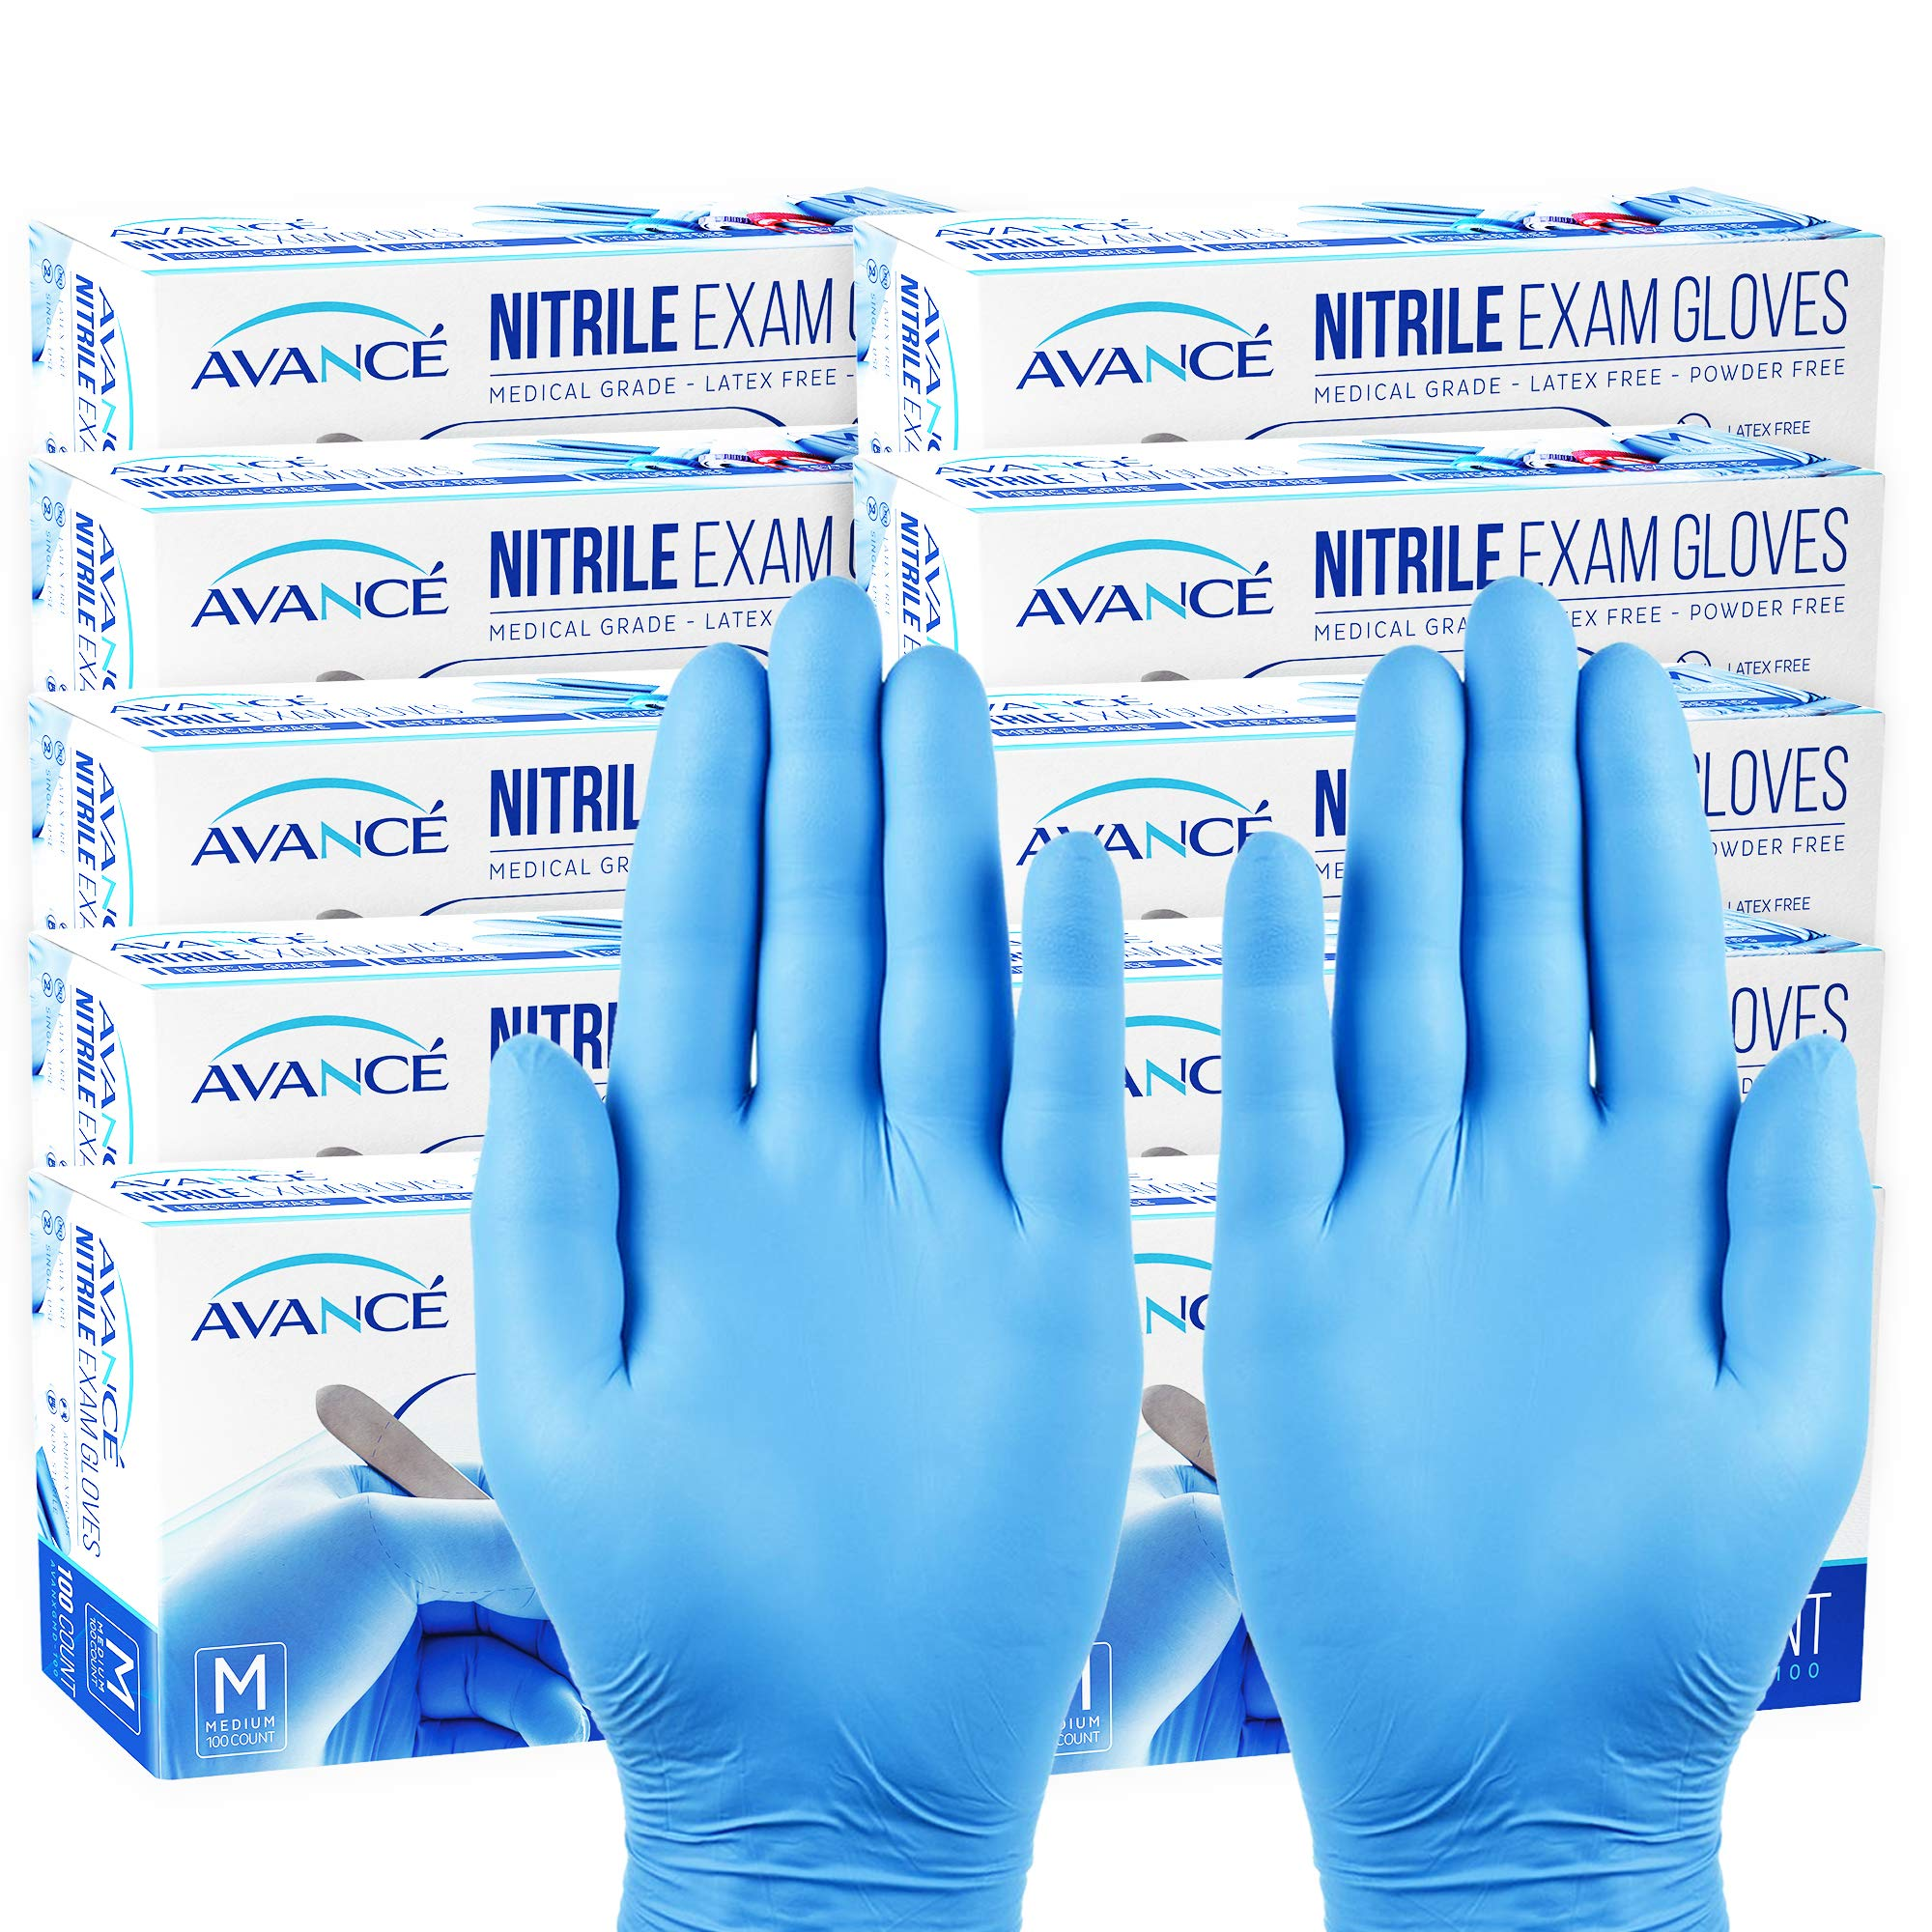 Avancé Nitrile Exam Gloves Medical Grade Powder-Free Textured Fingertips Latex-Free Synthetic Rubber Non-Sterile Disposable Ambidextrous Single Use, 3 Mil Thickness, Blue, Medium, 10-Pack (1000) by AVANCÉ